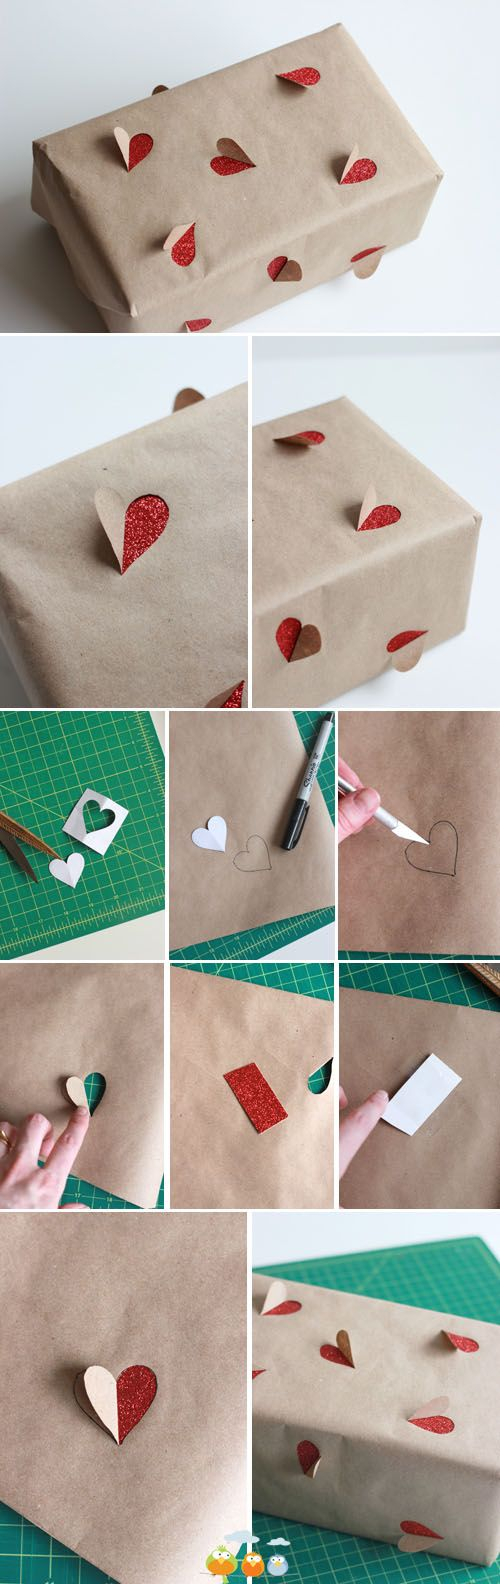 DIY heart gift wrap